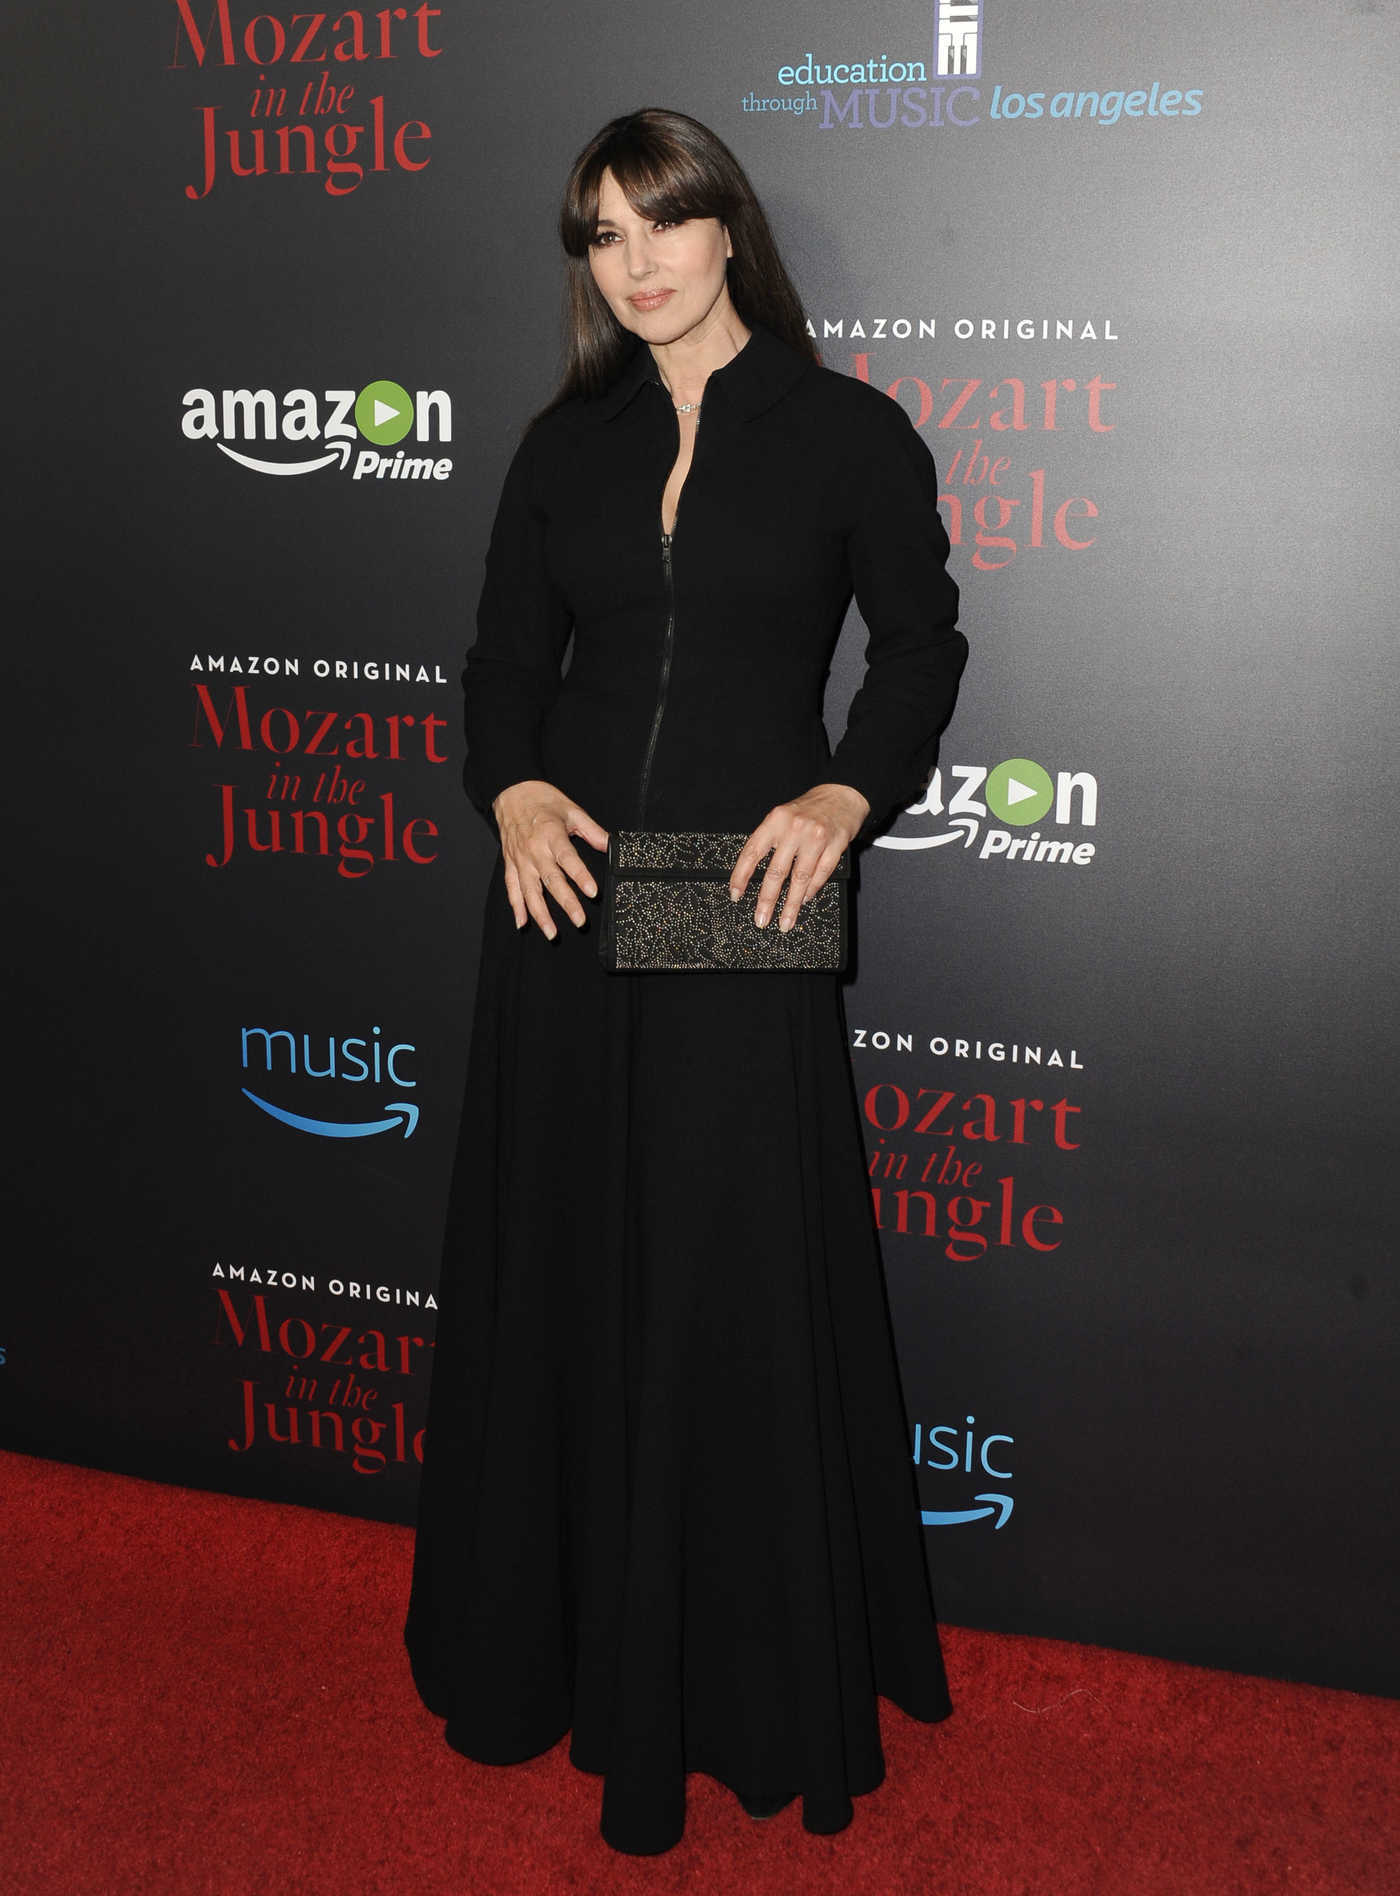 Monica Bellucci at the Mozart in the Jungle Screening in Los Angeles 12/01/2016